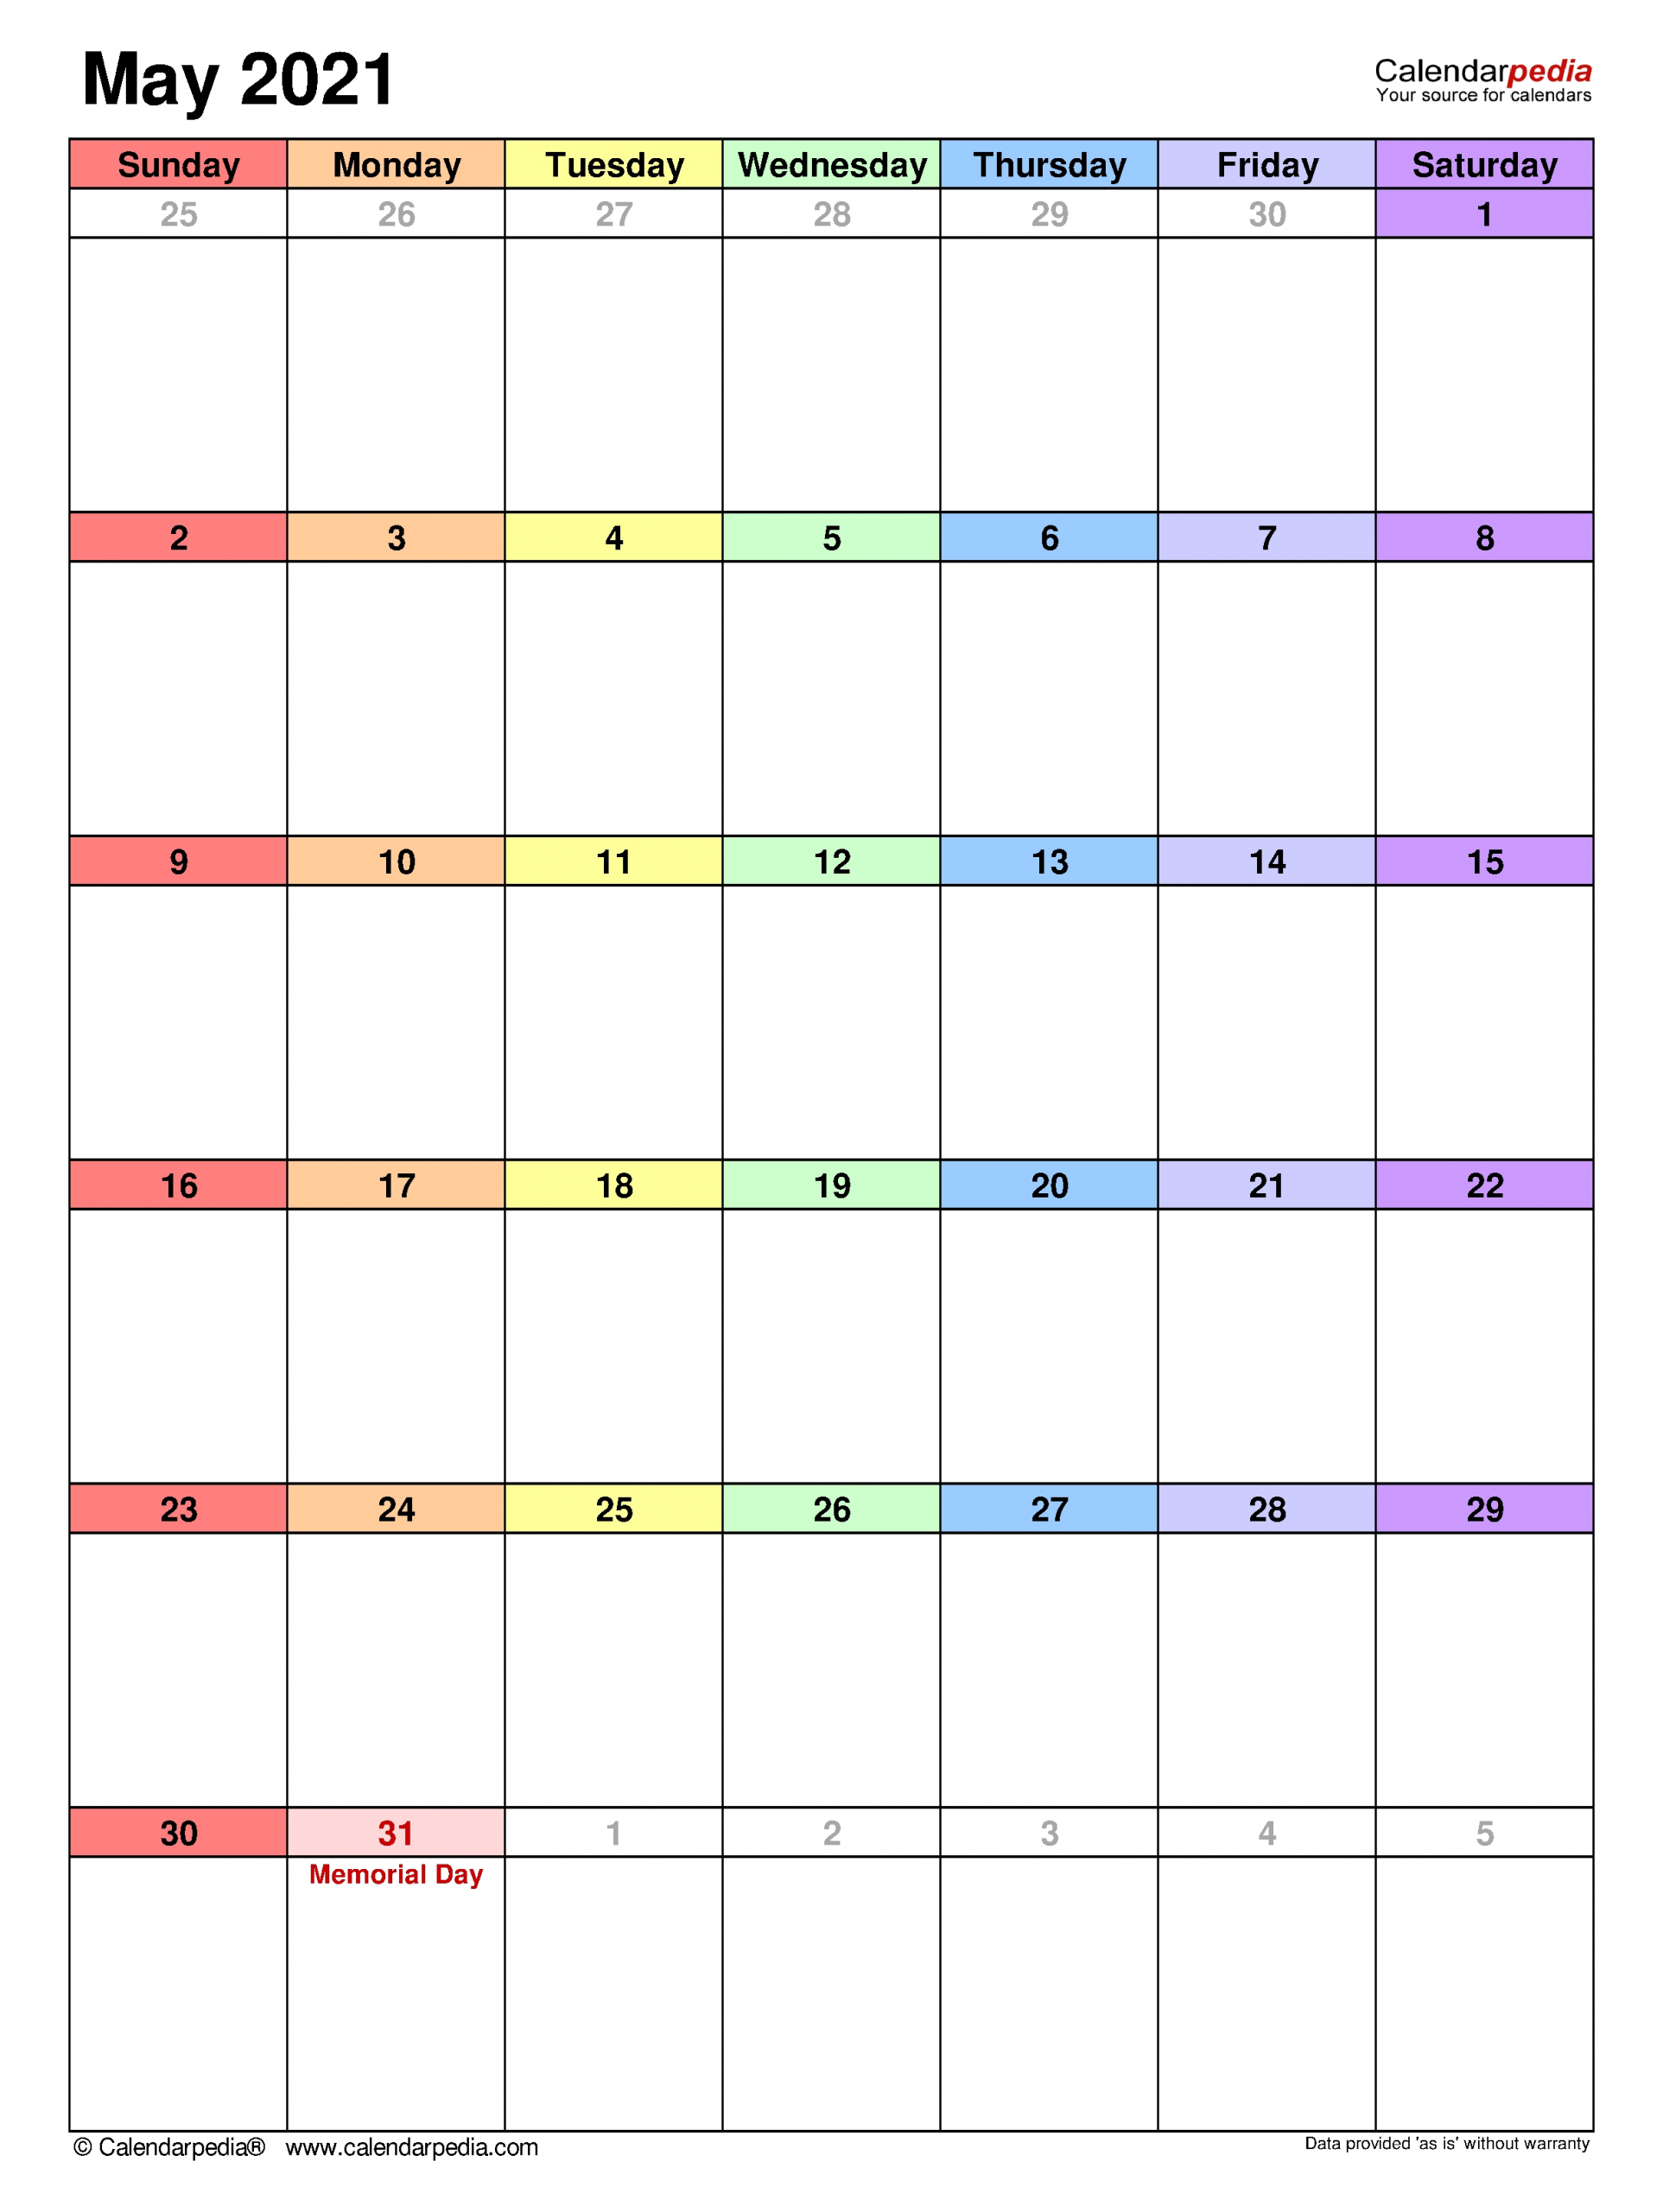 May 2021 Calendar   Templates For Word, Excel And Pdf in 2021 Excel Calendars Verticle Photo